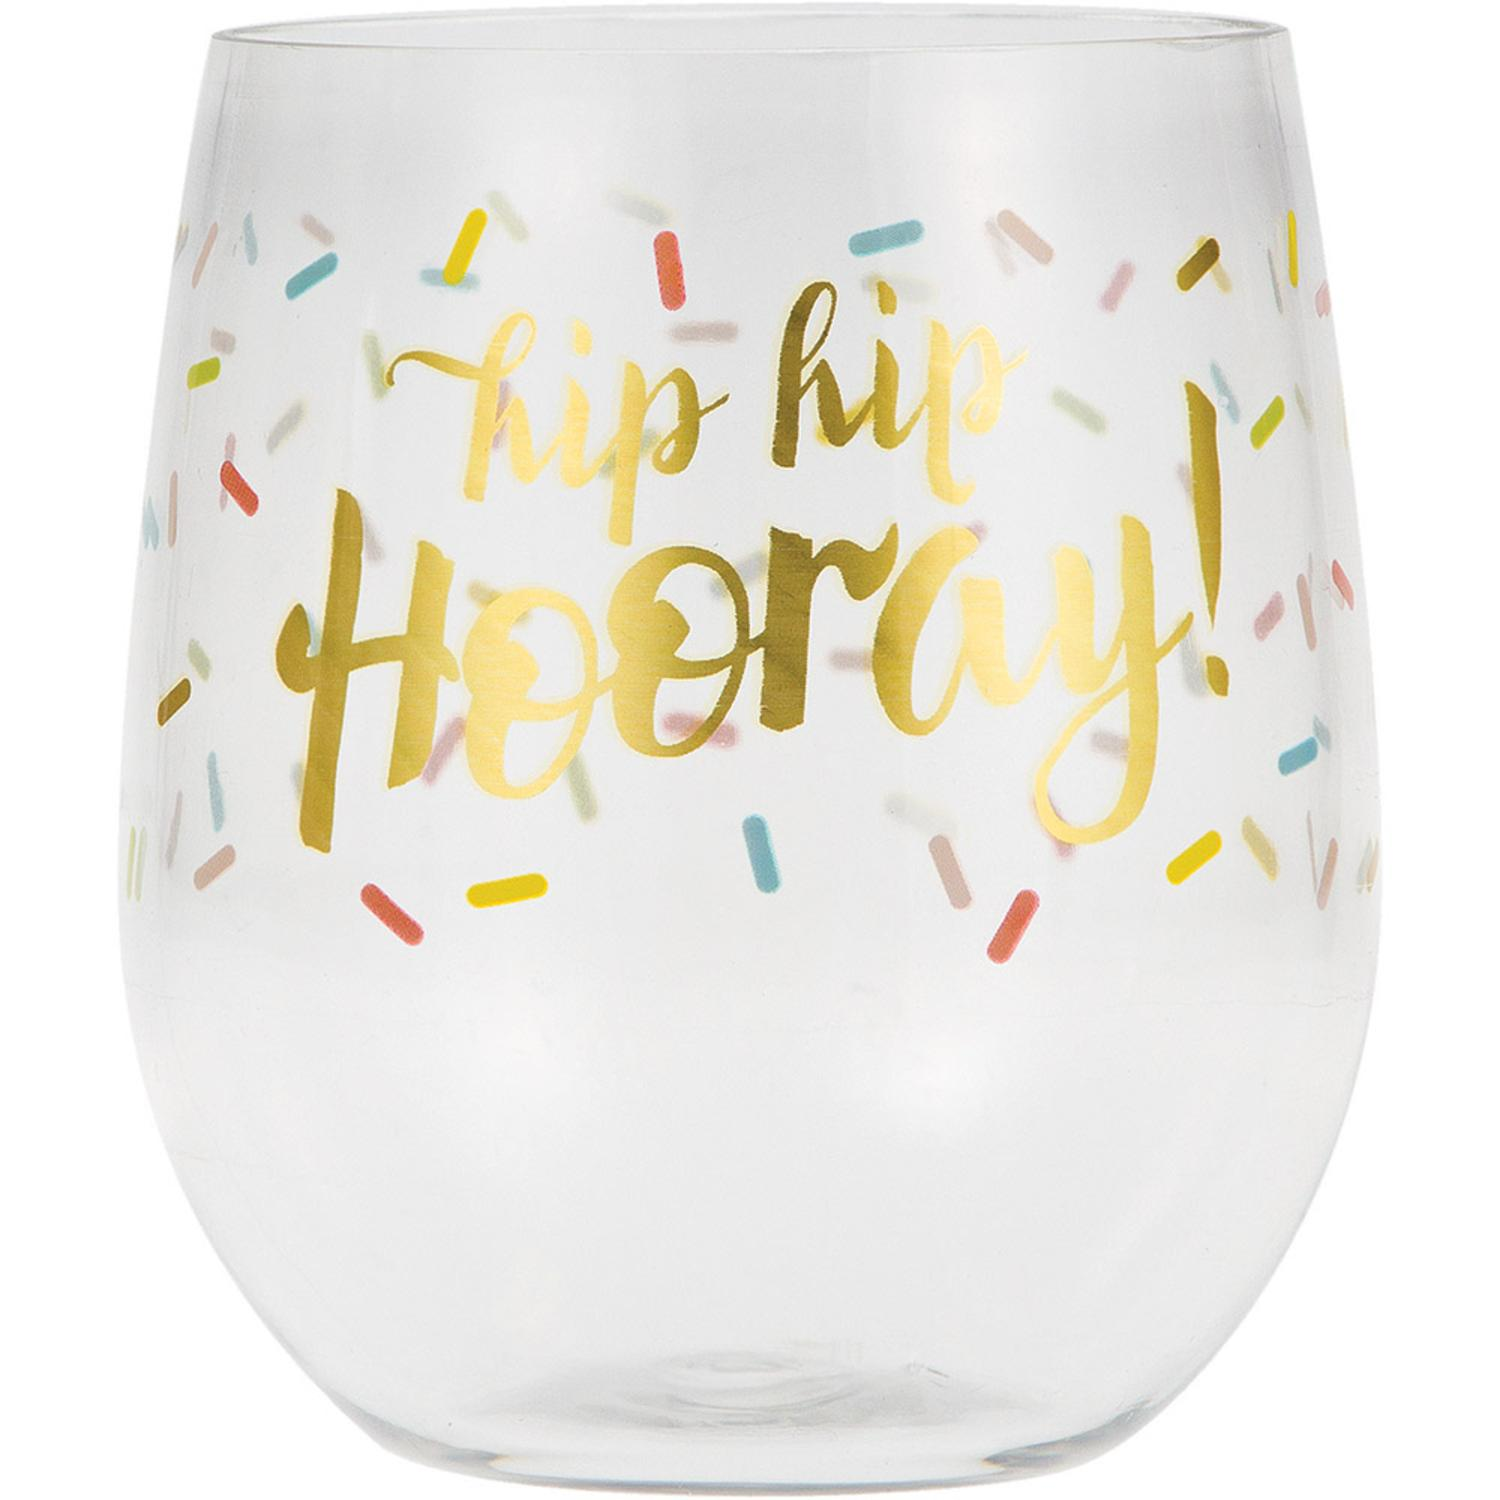 """Pack of 6 White """"Hip Hip Hooray"""" Printed Stemless Reusable 14 oz Wine Glasses 3.9"""""""